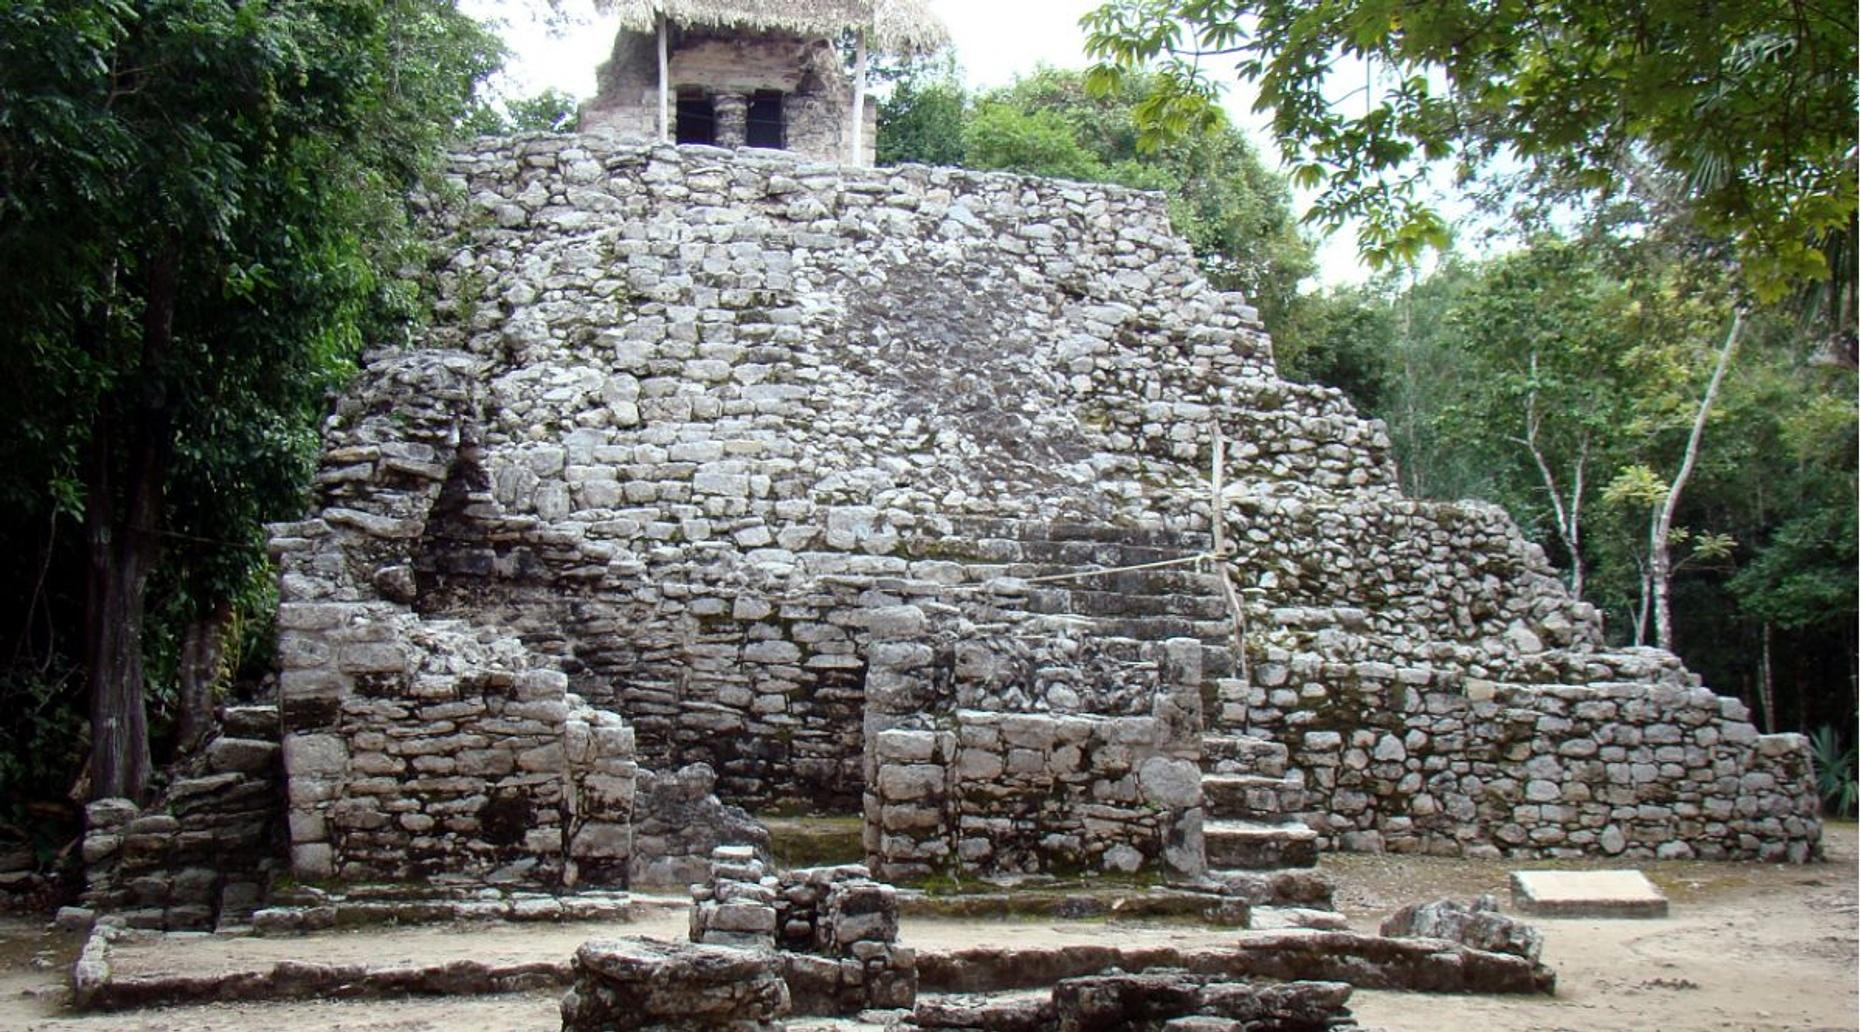 The Coba Ruins Self-Guided Tour